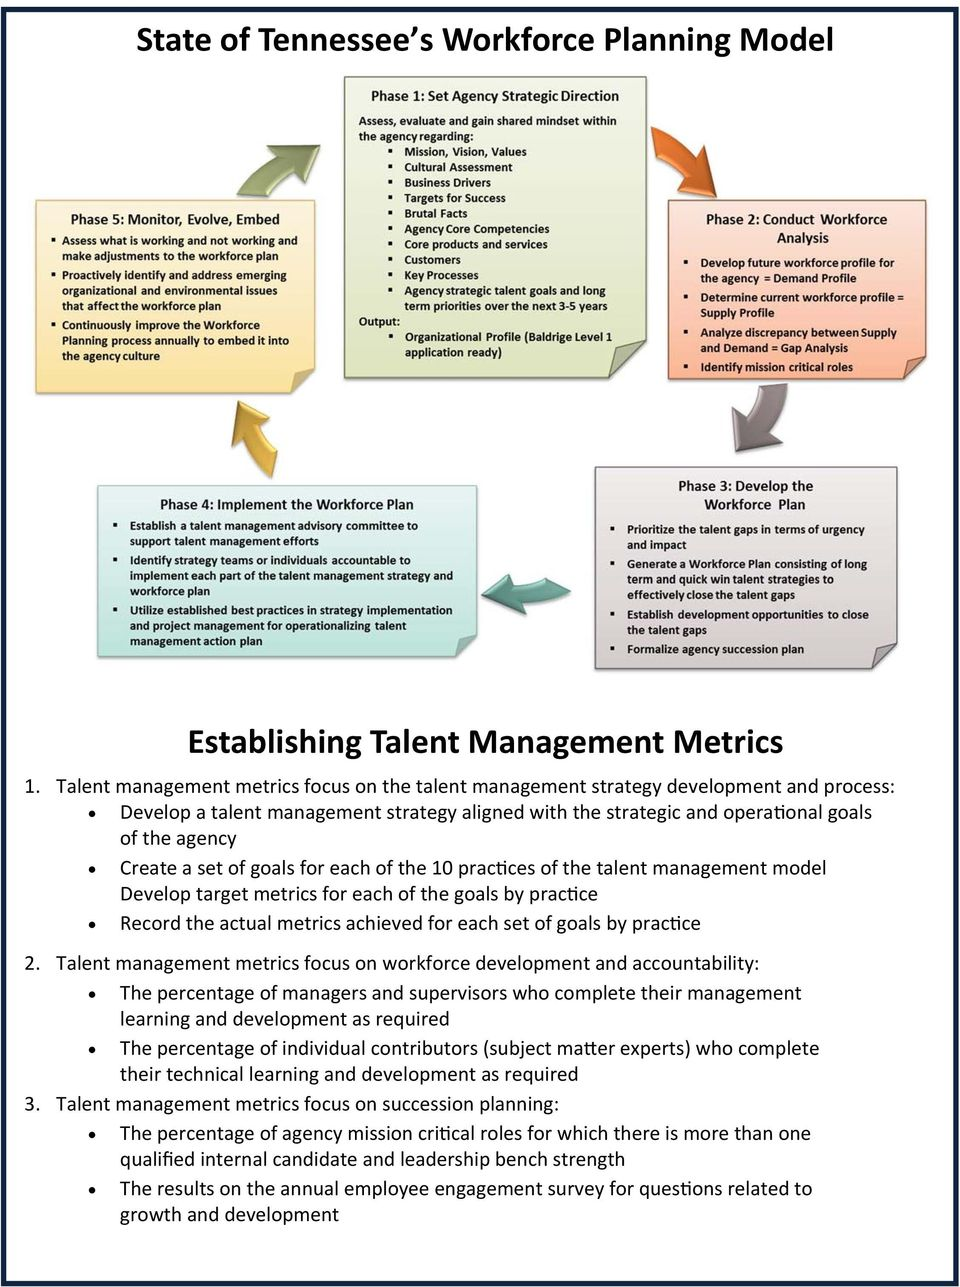 set of goals for each of the 10 prac ces of the talent management model Develop target metrics for each of the goals by prac ce Record the actual metrics achieved for each set of goals by prac ce 2.